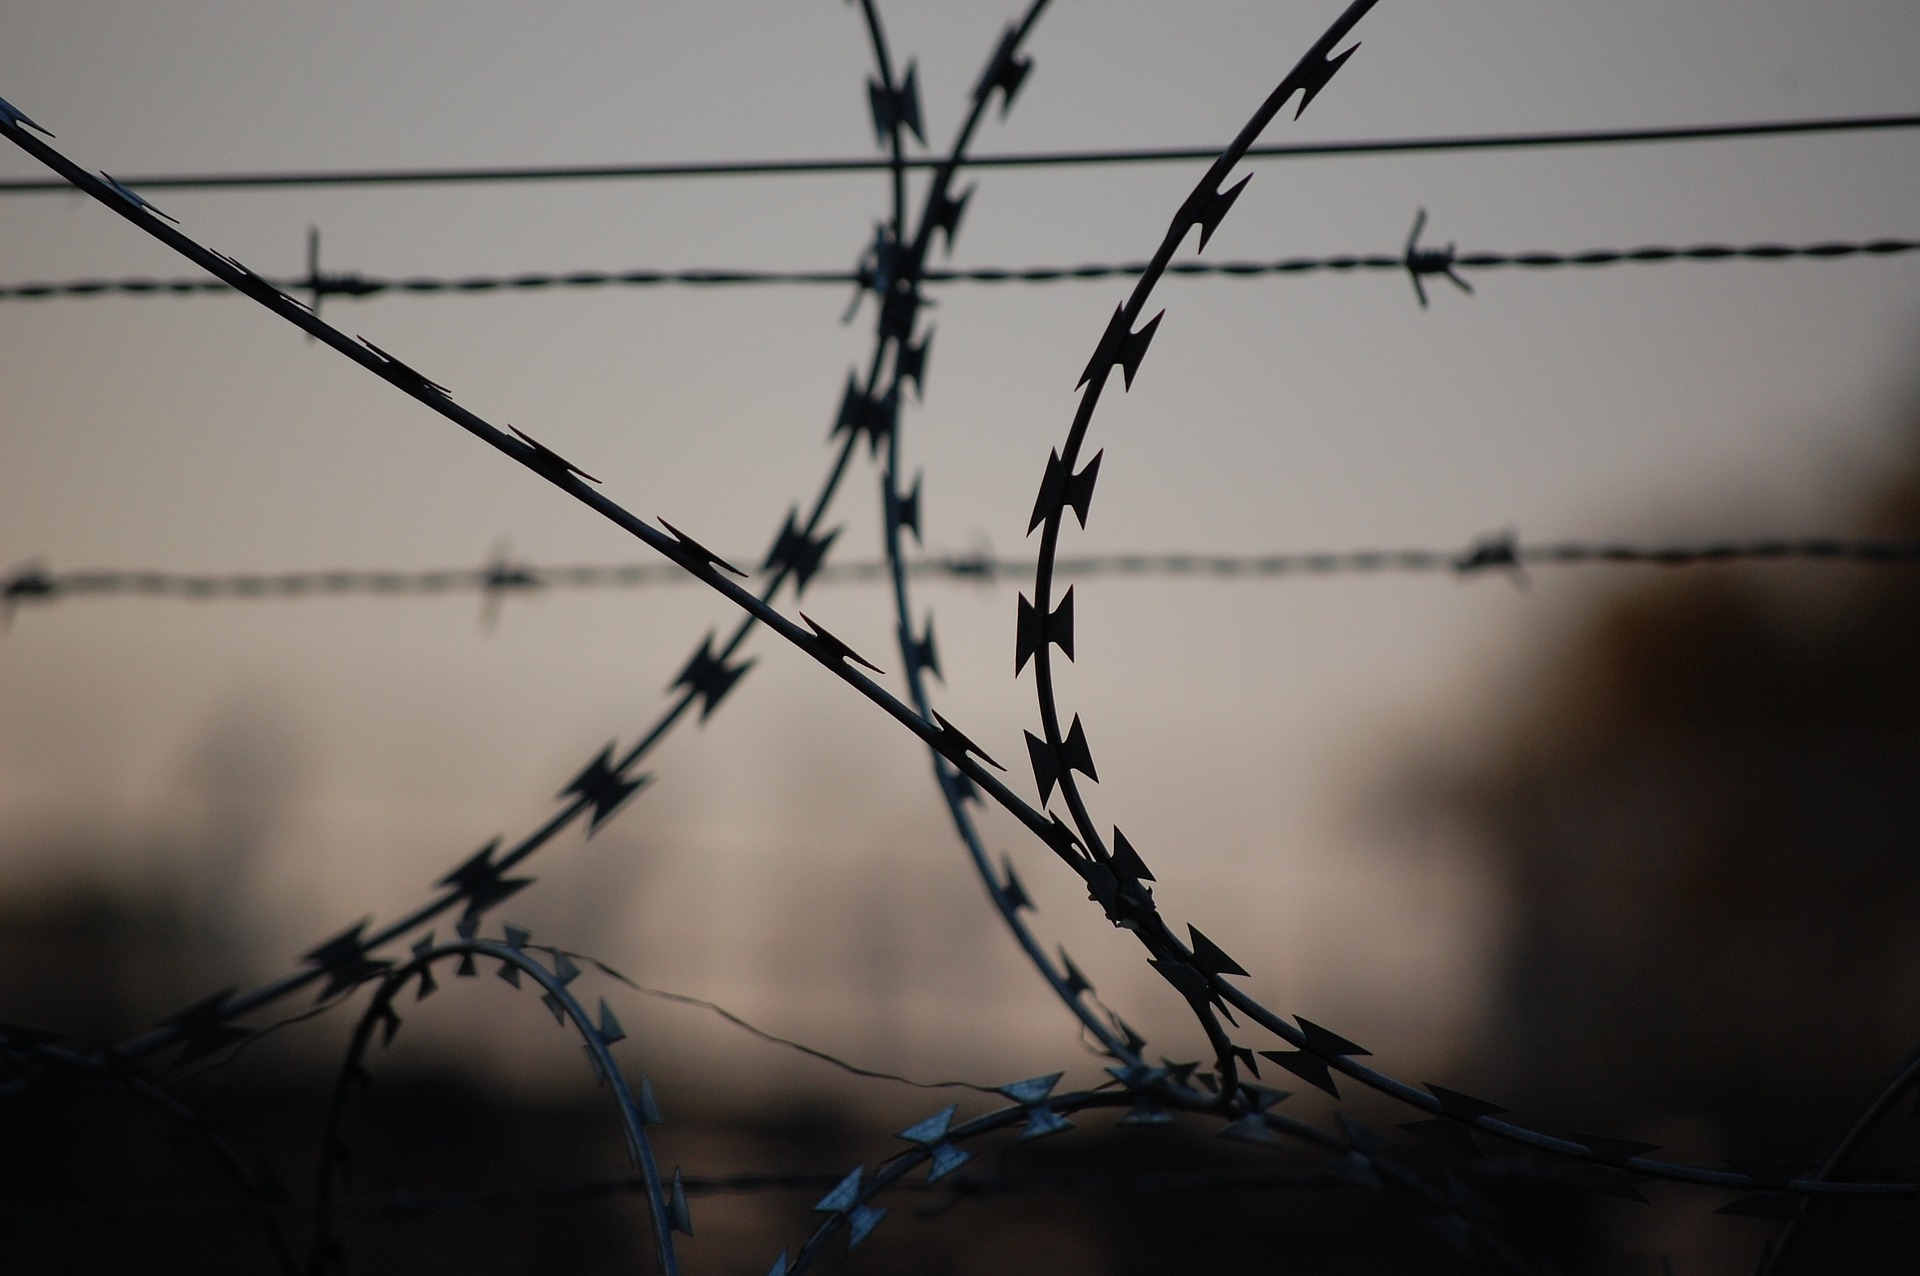 barbed-wire-765484_1920.jpg